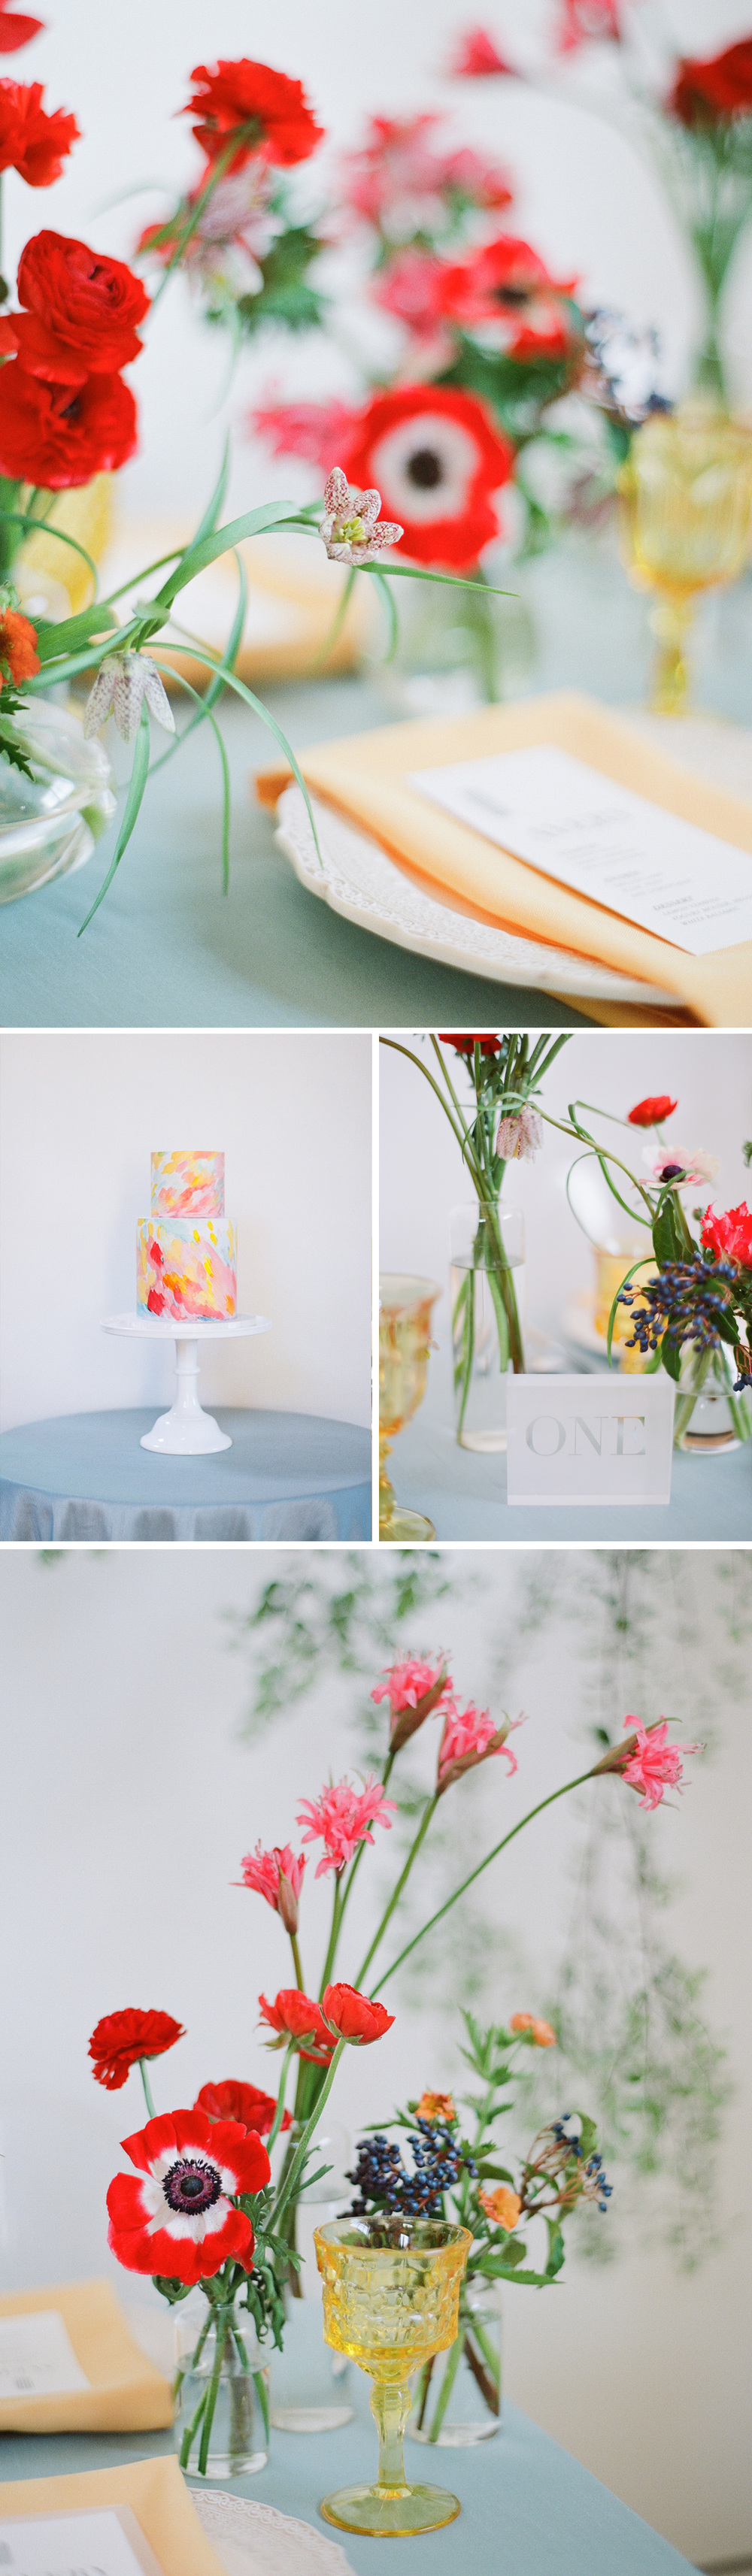 Jewel tone glassware and table settings, with viburnum berry floral accents; Sylvie Gil Photography